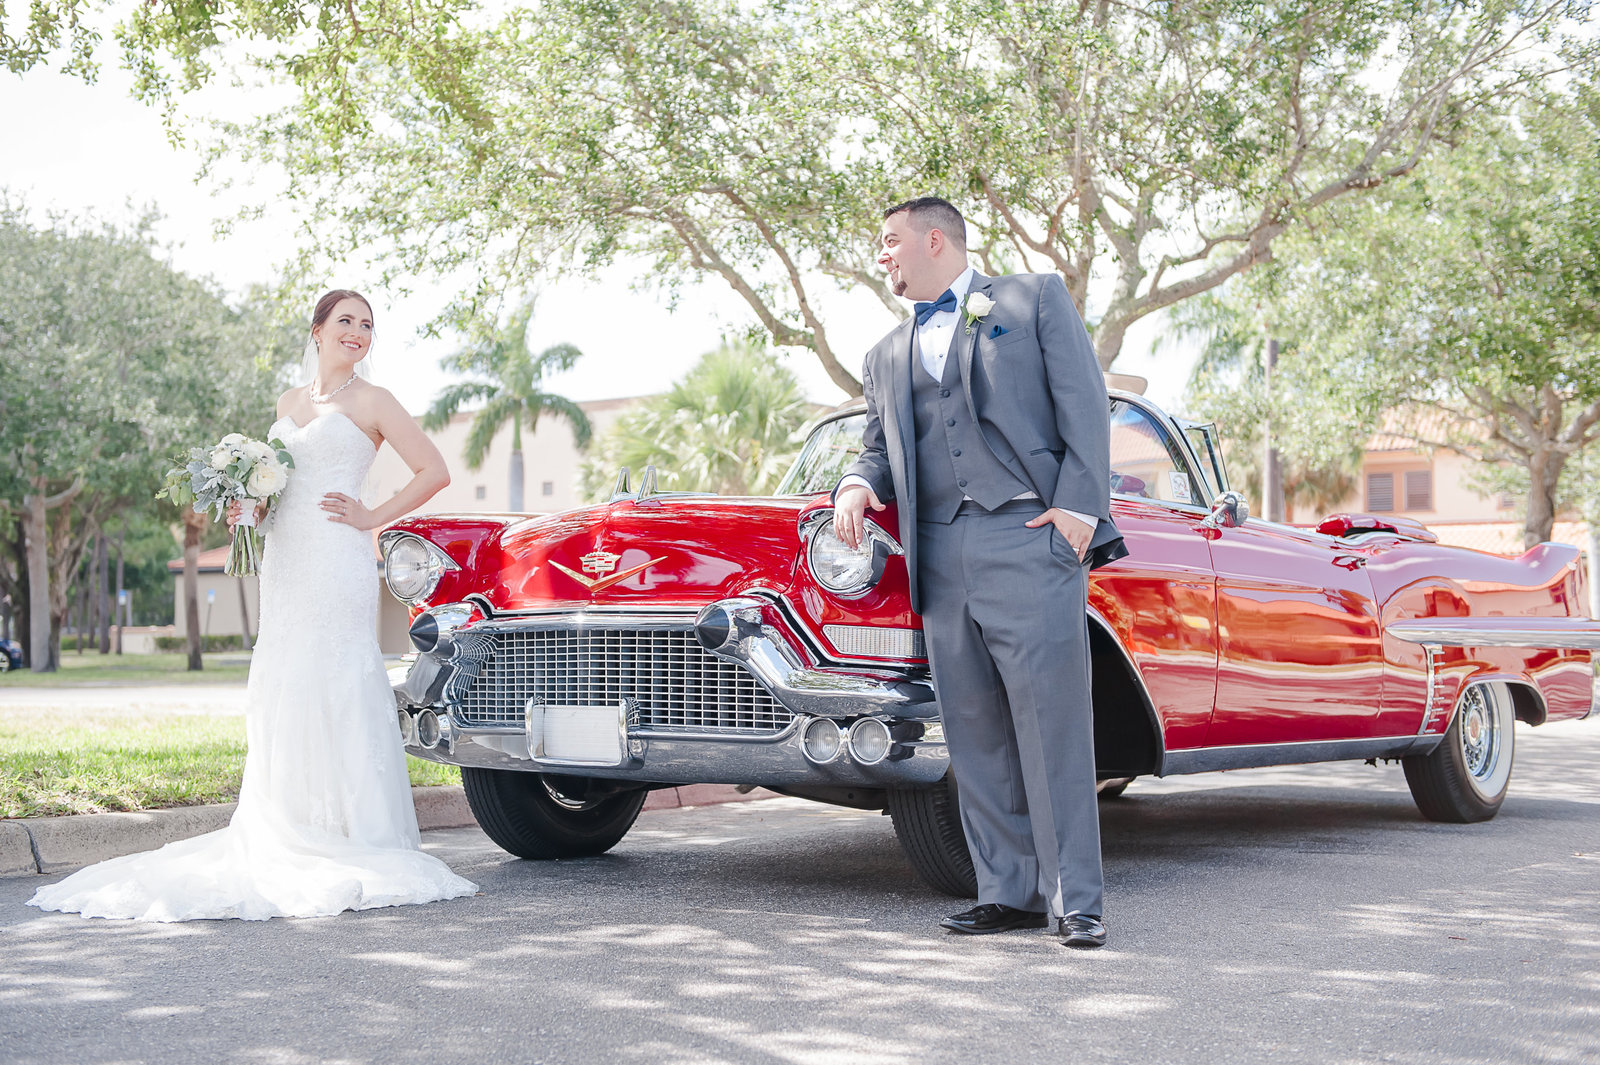 Red Classic Car Wedding - Country Club at Mirasol Wedding - Palm Beach Wedding Photography by Palm Beach Photography, Inc.